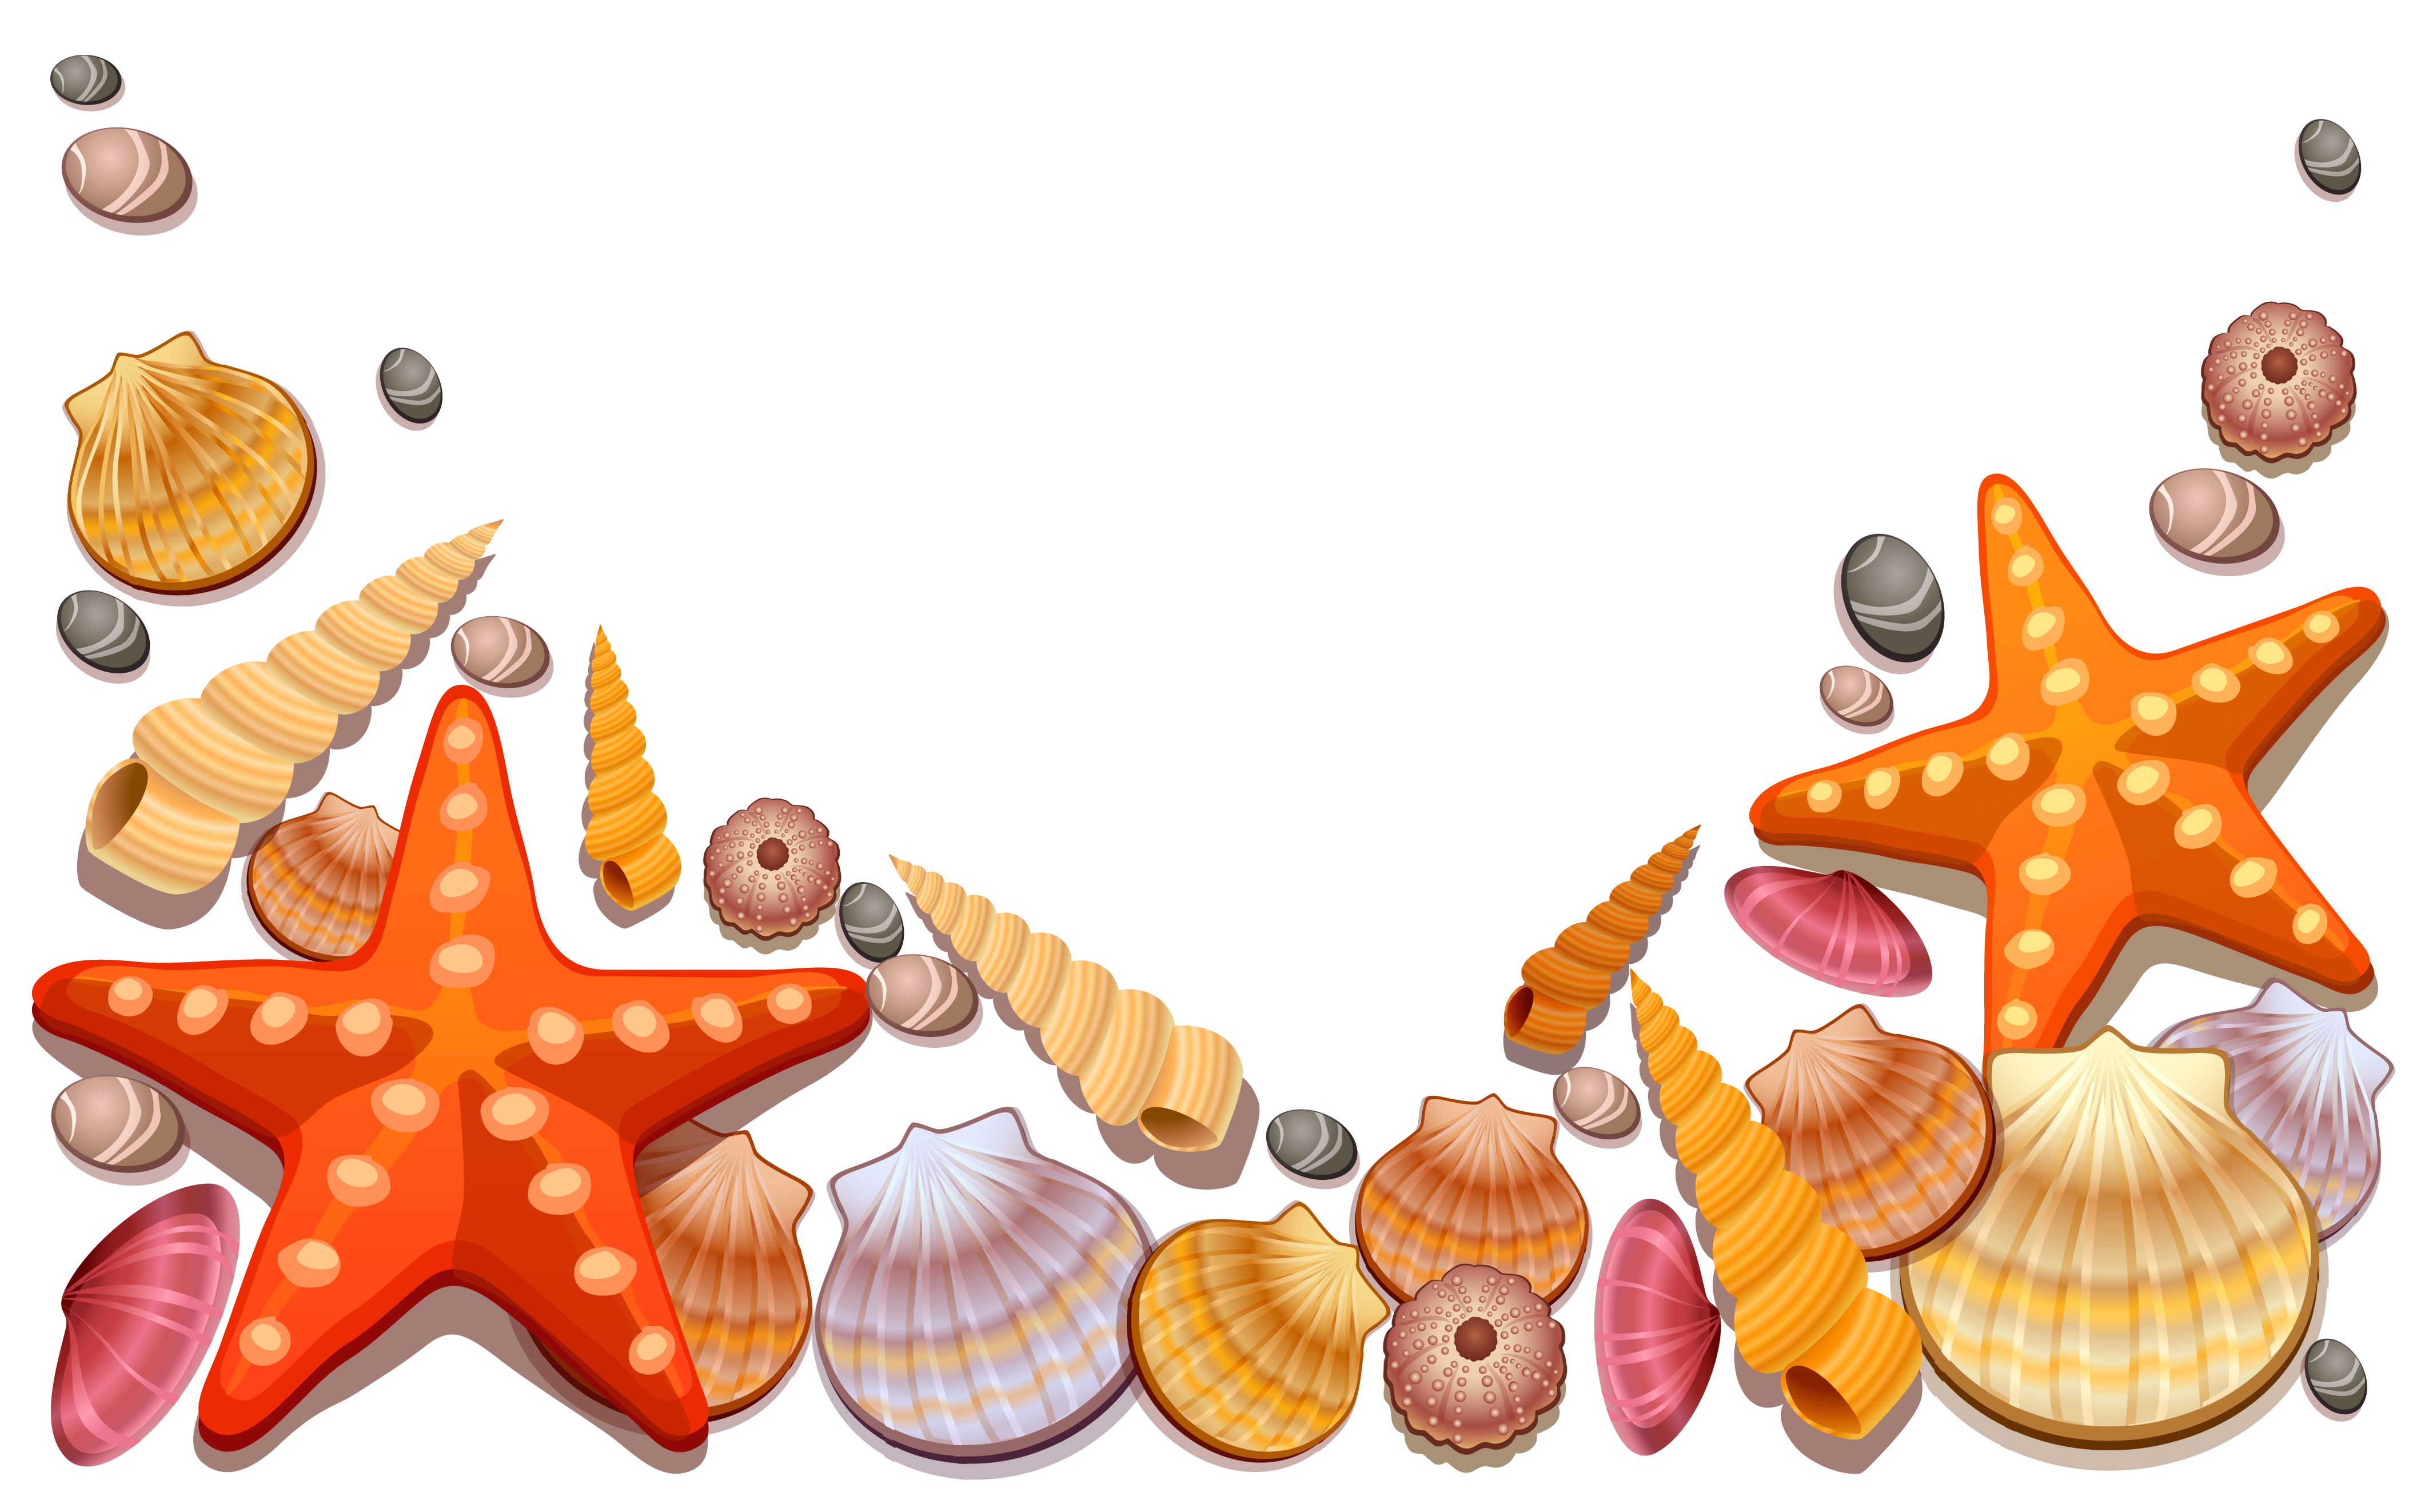 Sea shells star fishon beach clipart graphic black and white library Clipart Sea Shells at GetDrawings.com | Free for personal use ... graphic black and white library